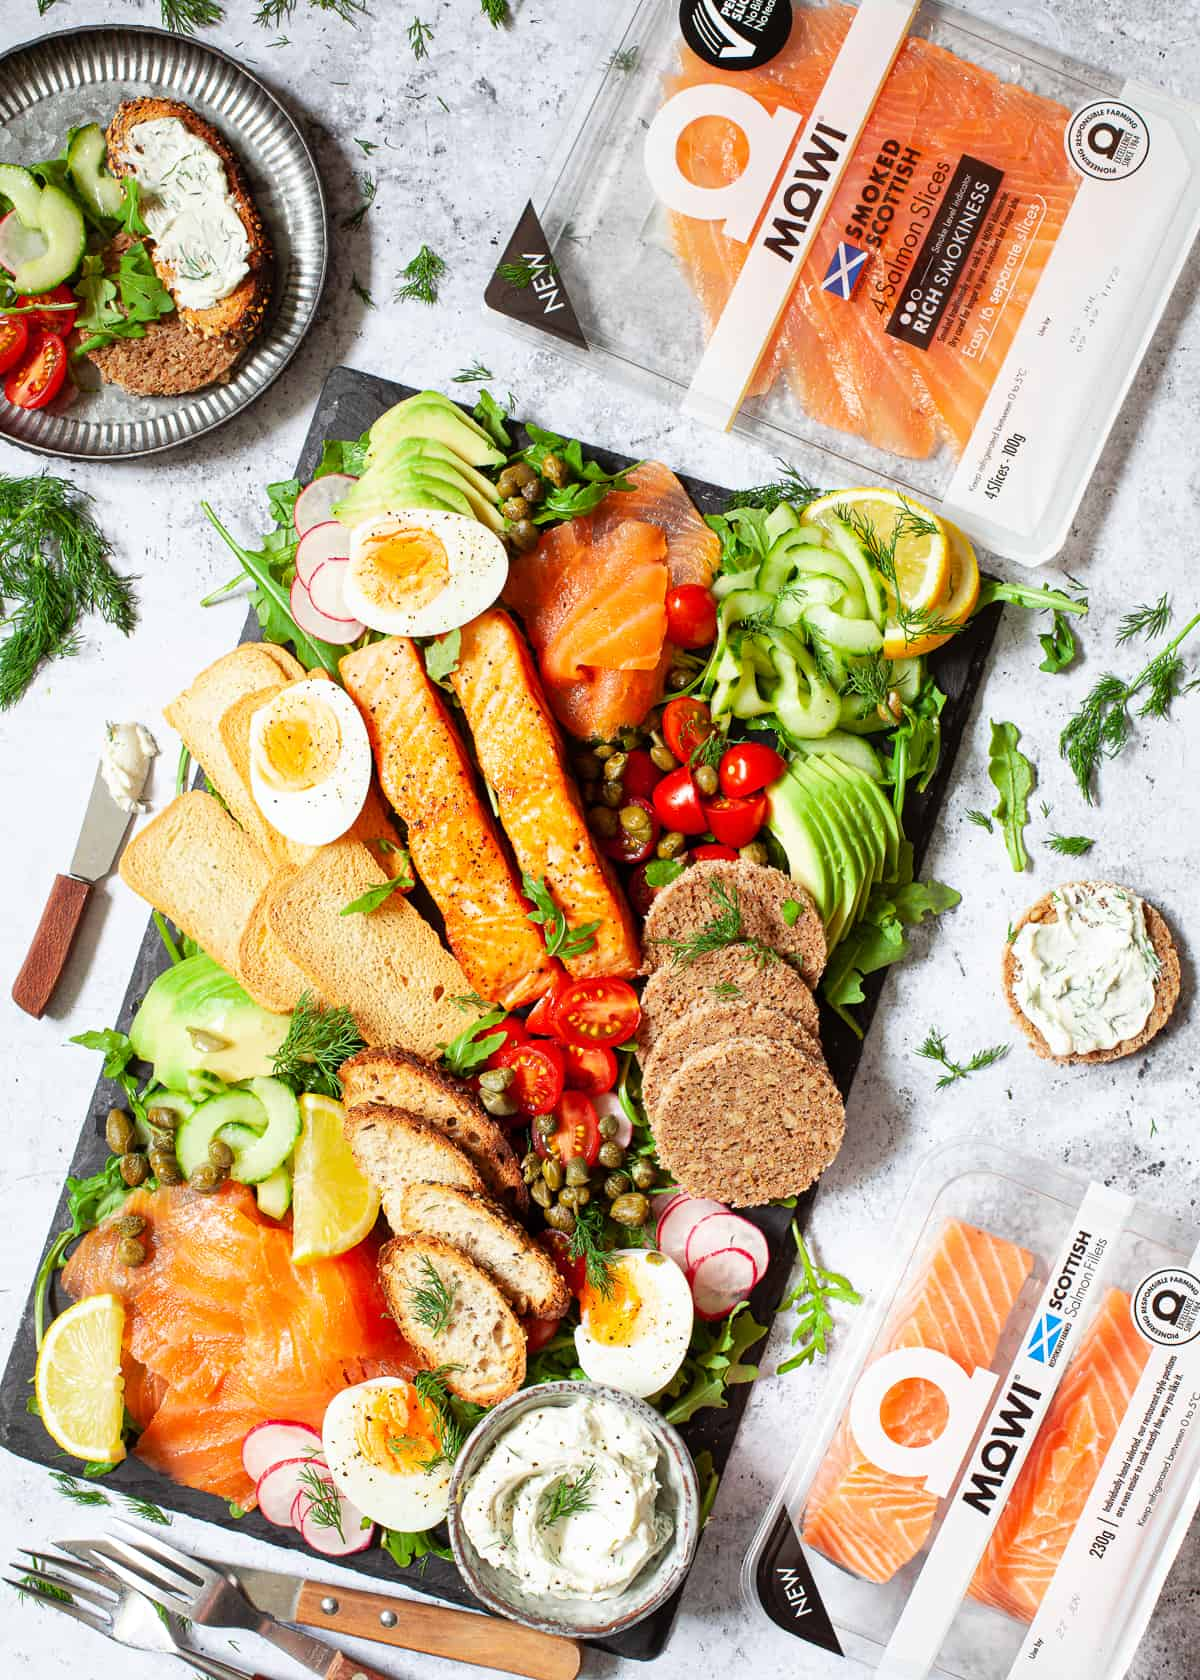 A platter of fresh vegetables, eggs, fish and various breads and toasts